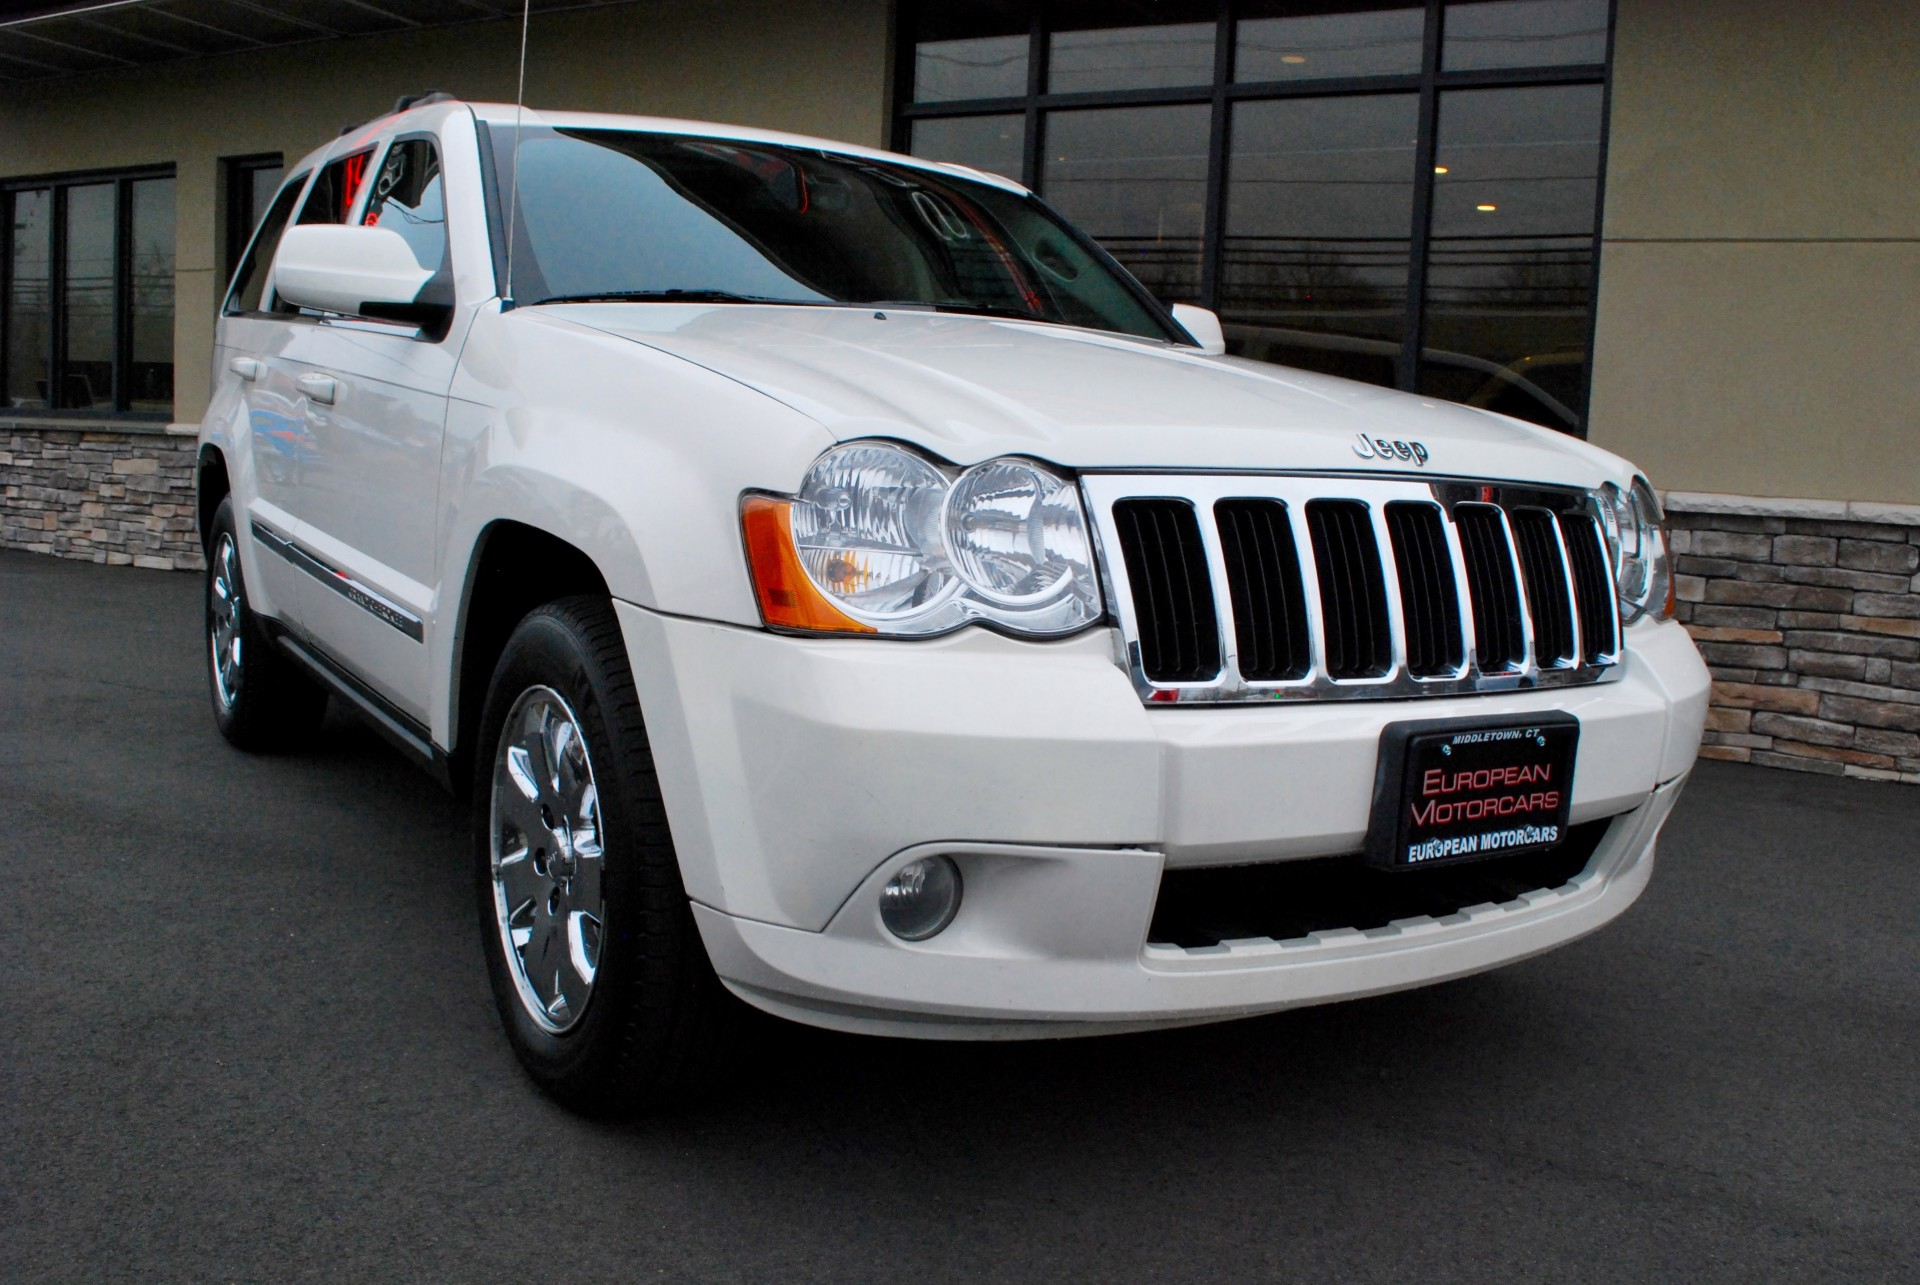 2008 jeep grand cherokee limited for sale near middletown ct ct jeep dealer stock 243319. Black Bedroom Furniture Sets. Home Design Ideas